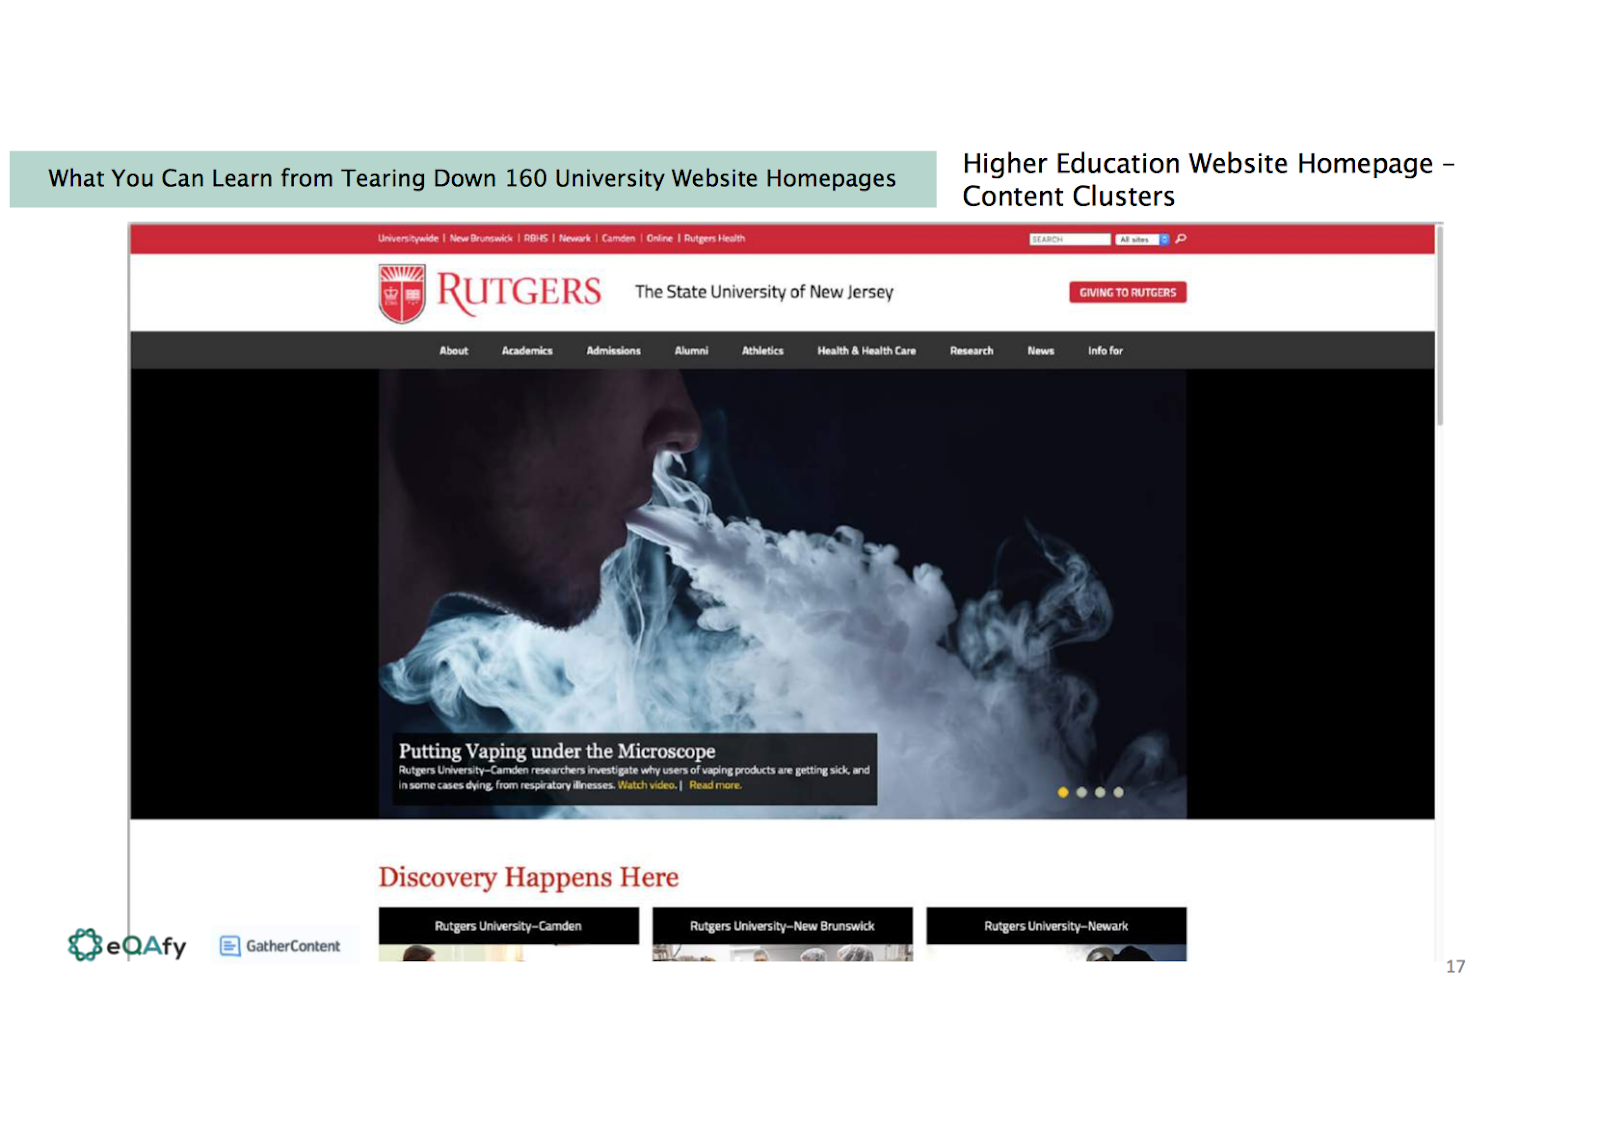 Slide showing the Rutgers university homepage with a carousel of images